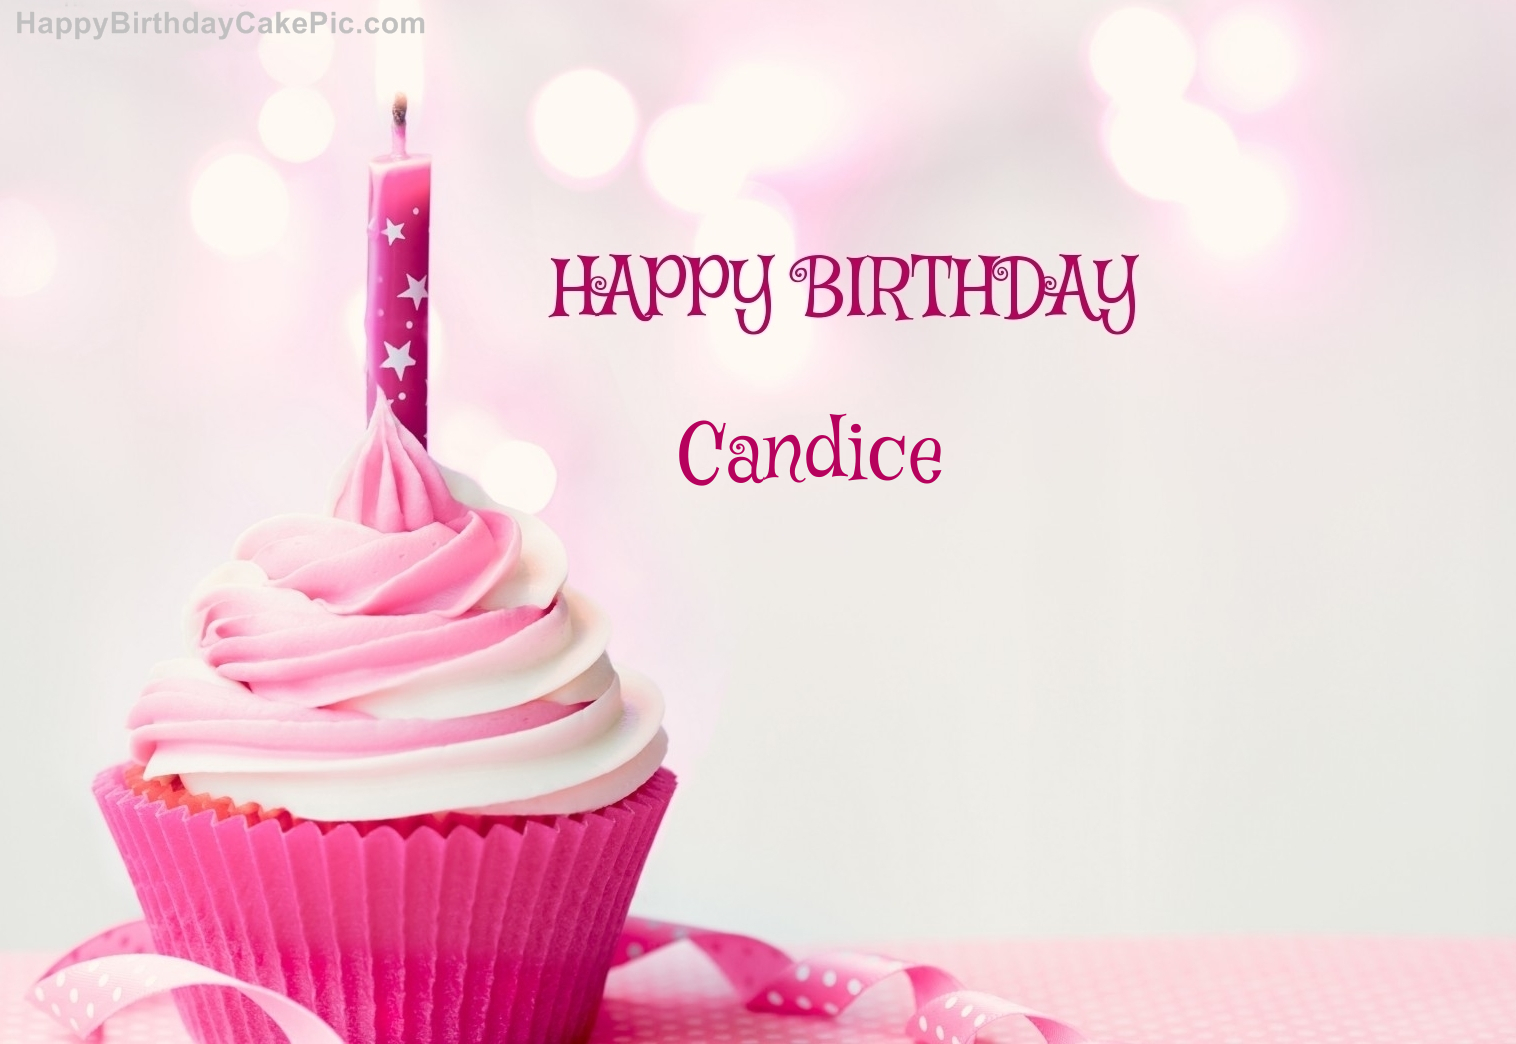 Happy Birthday Cupcake Candle Pink Cake For Candice